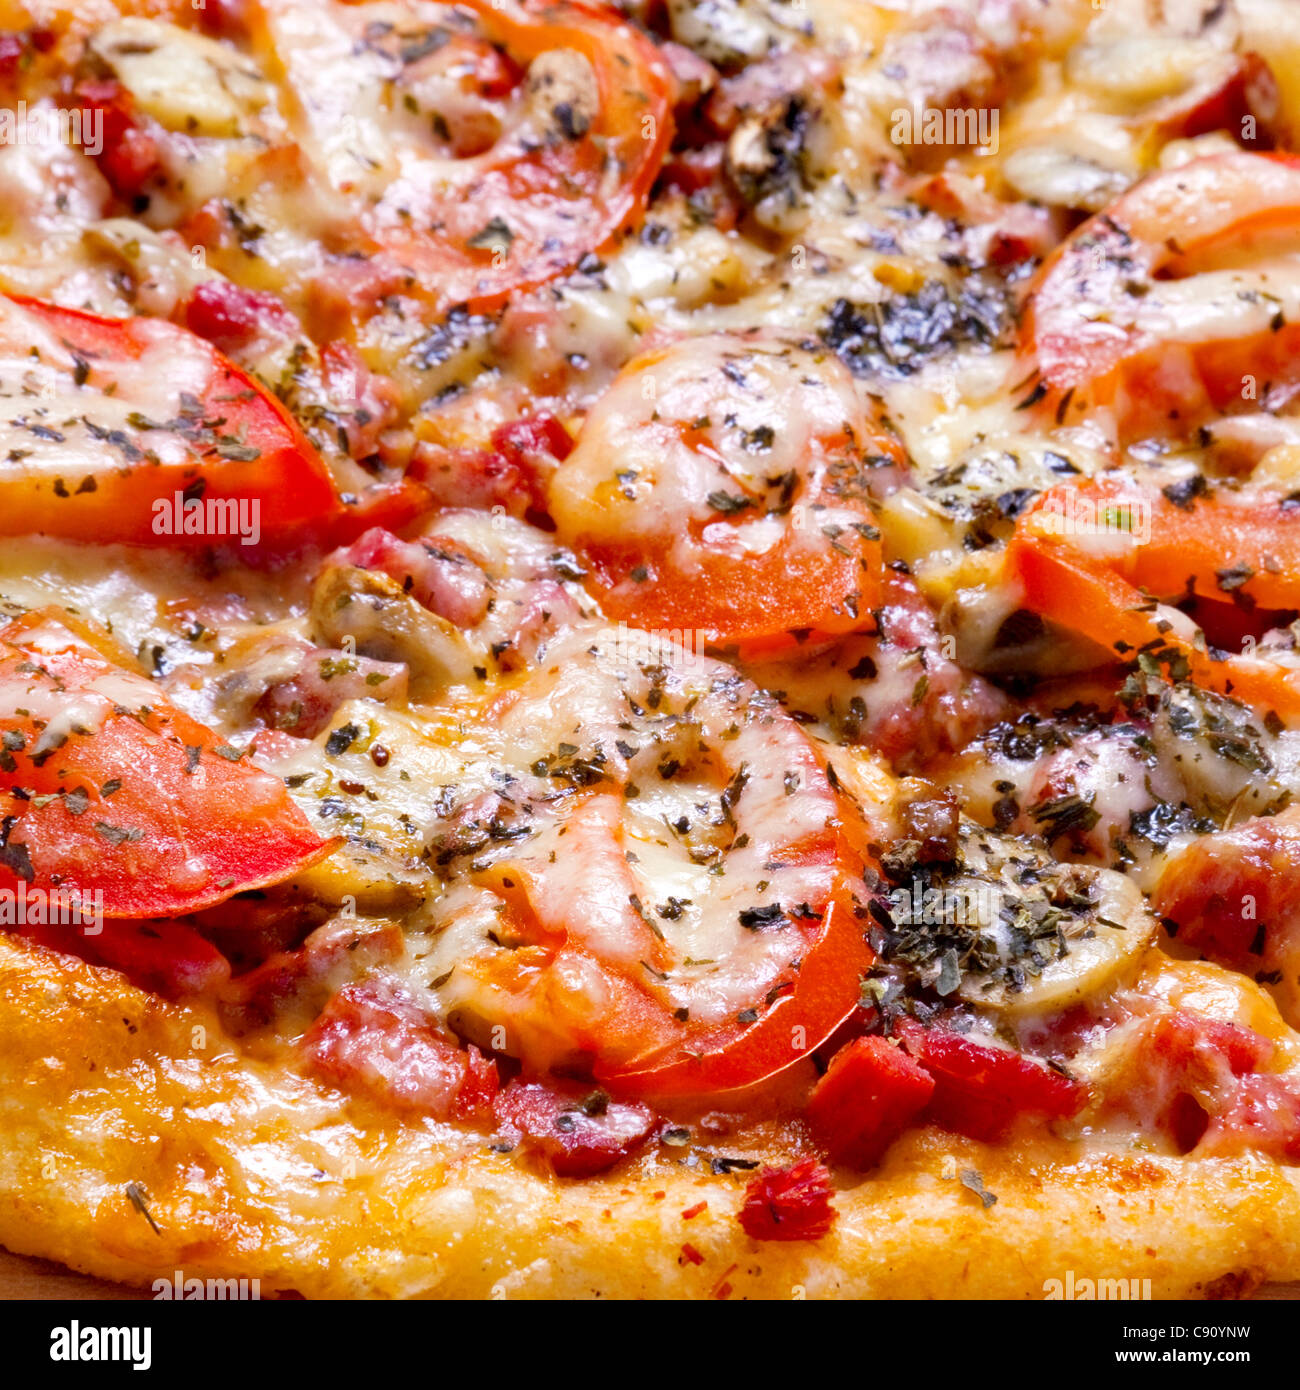 Pizza fast food with tomato and cheese closeup - Stock Image